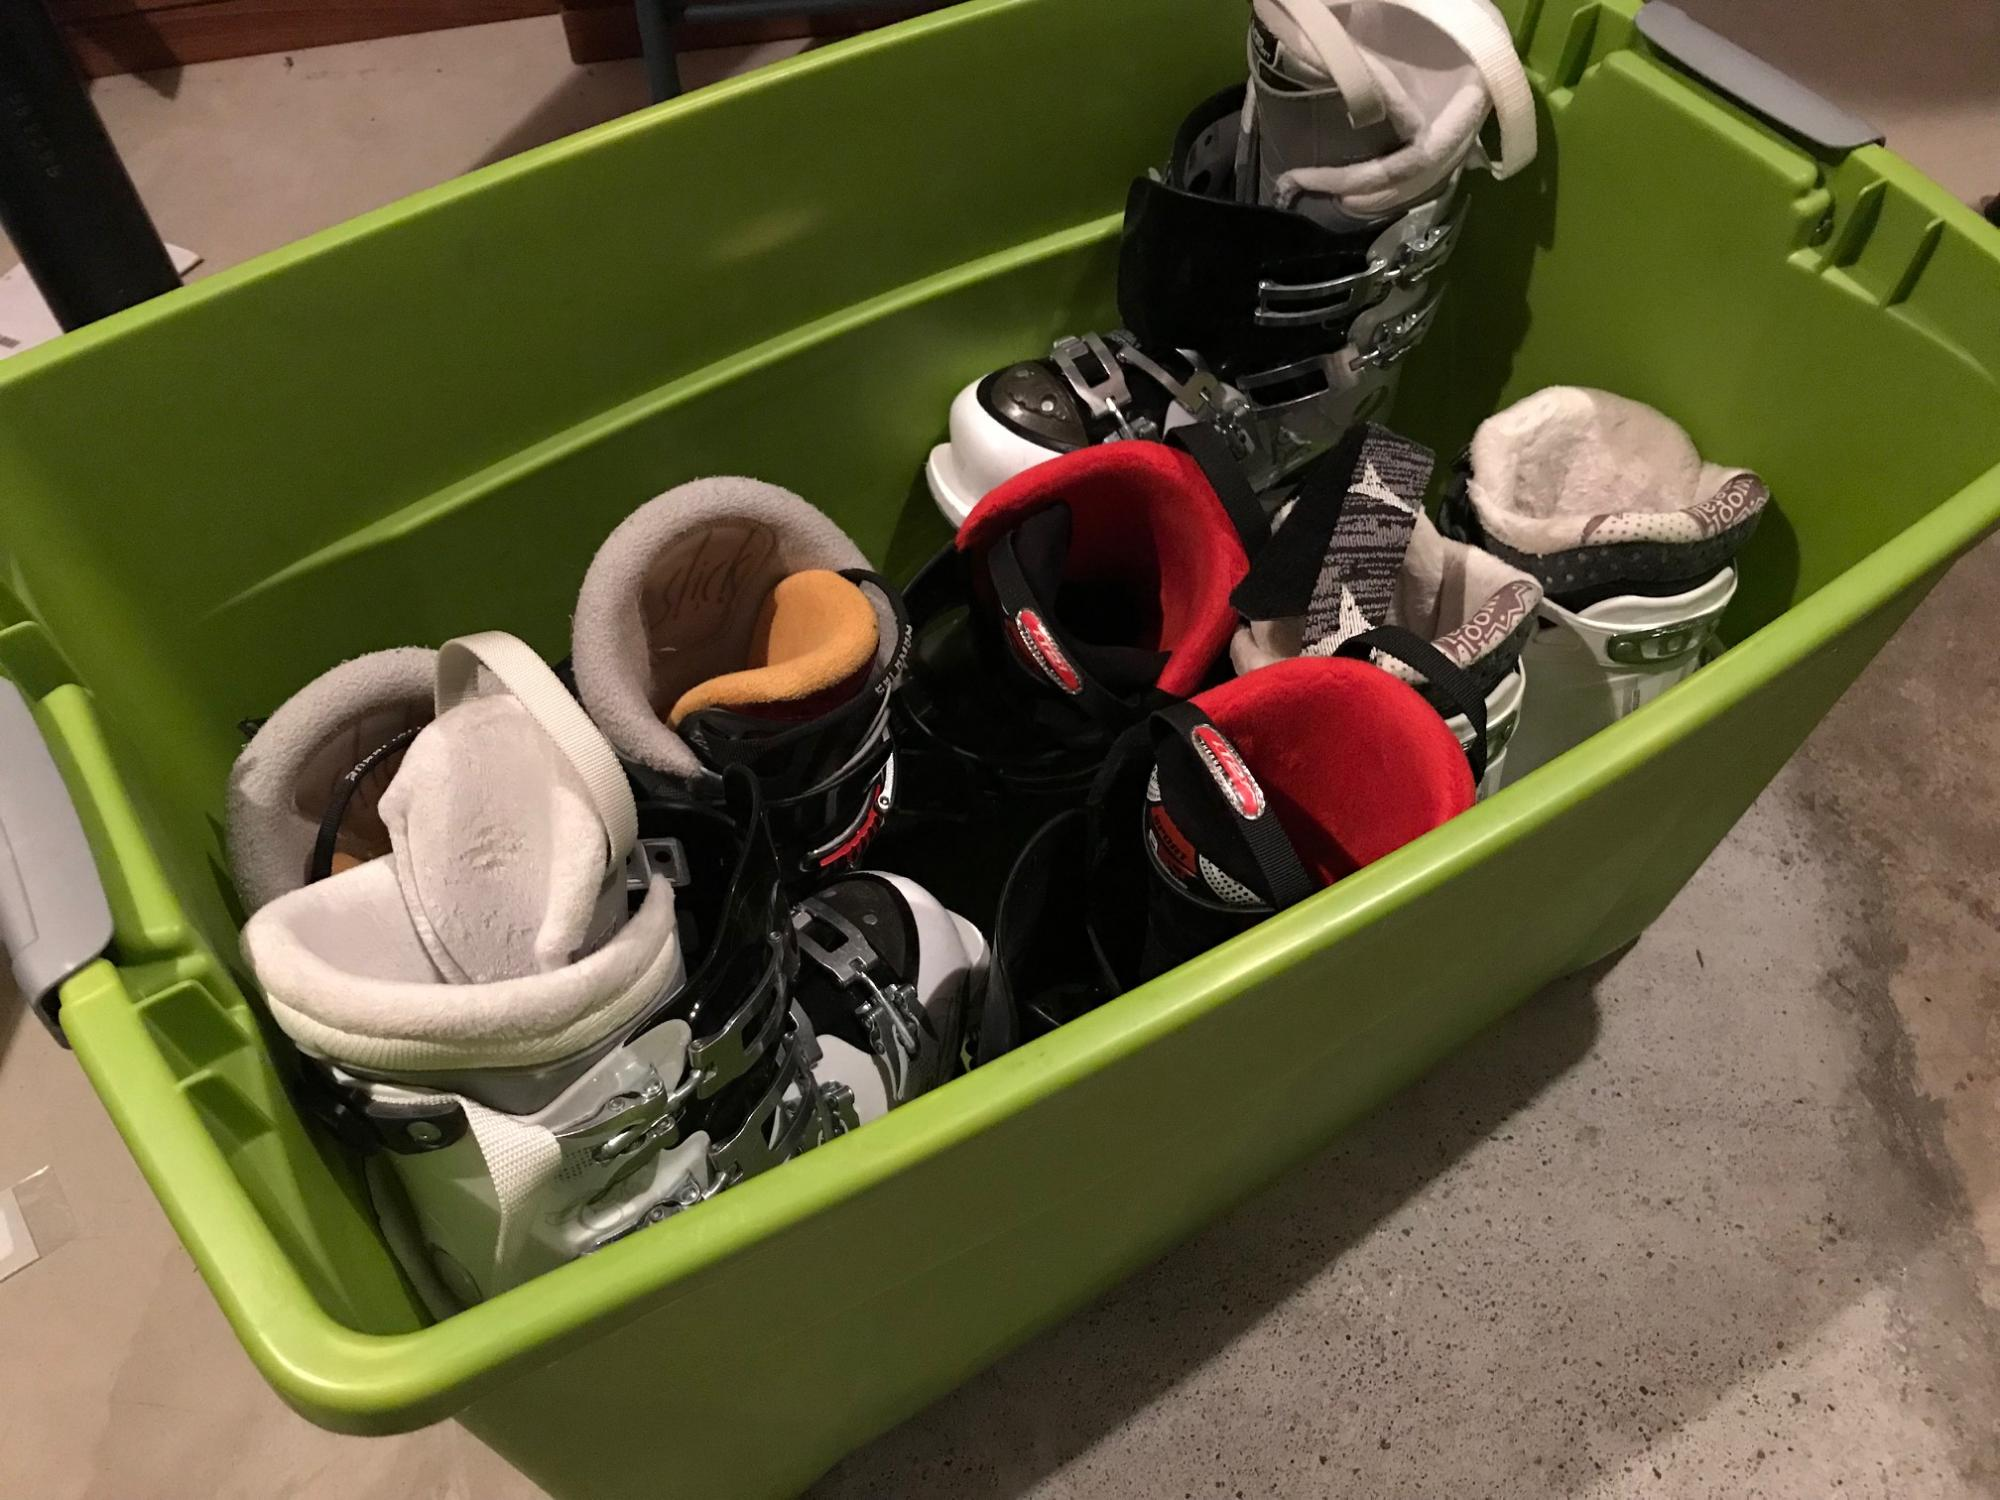 Storage bin for ski gear